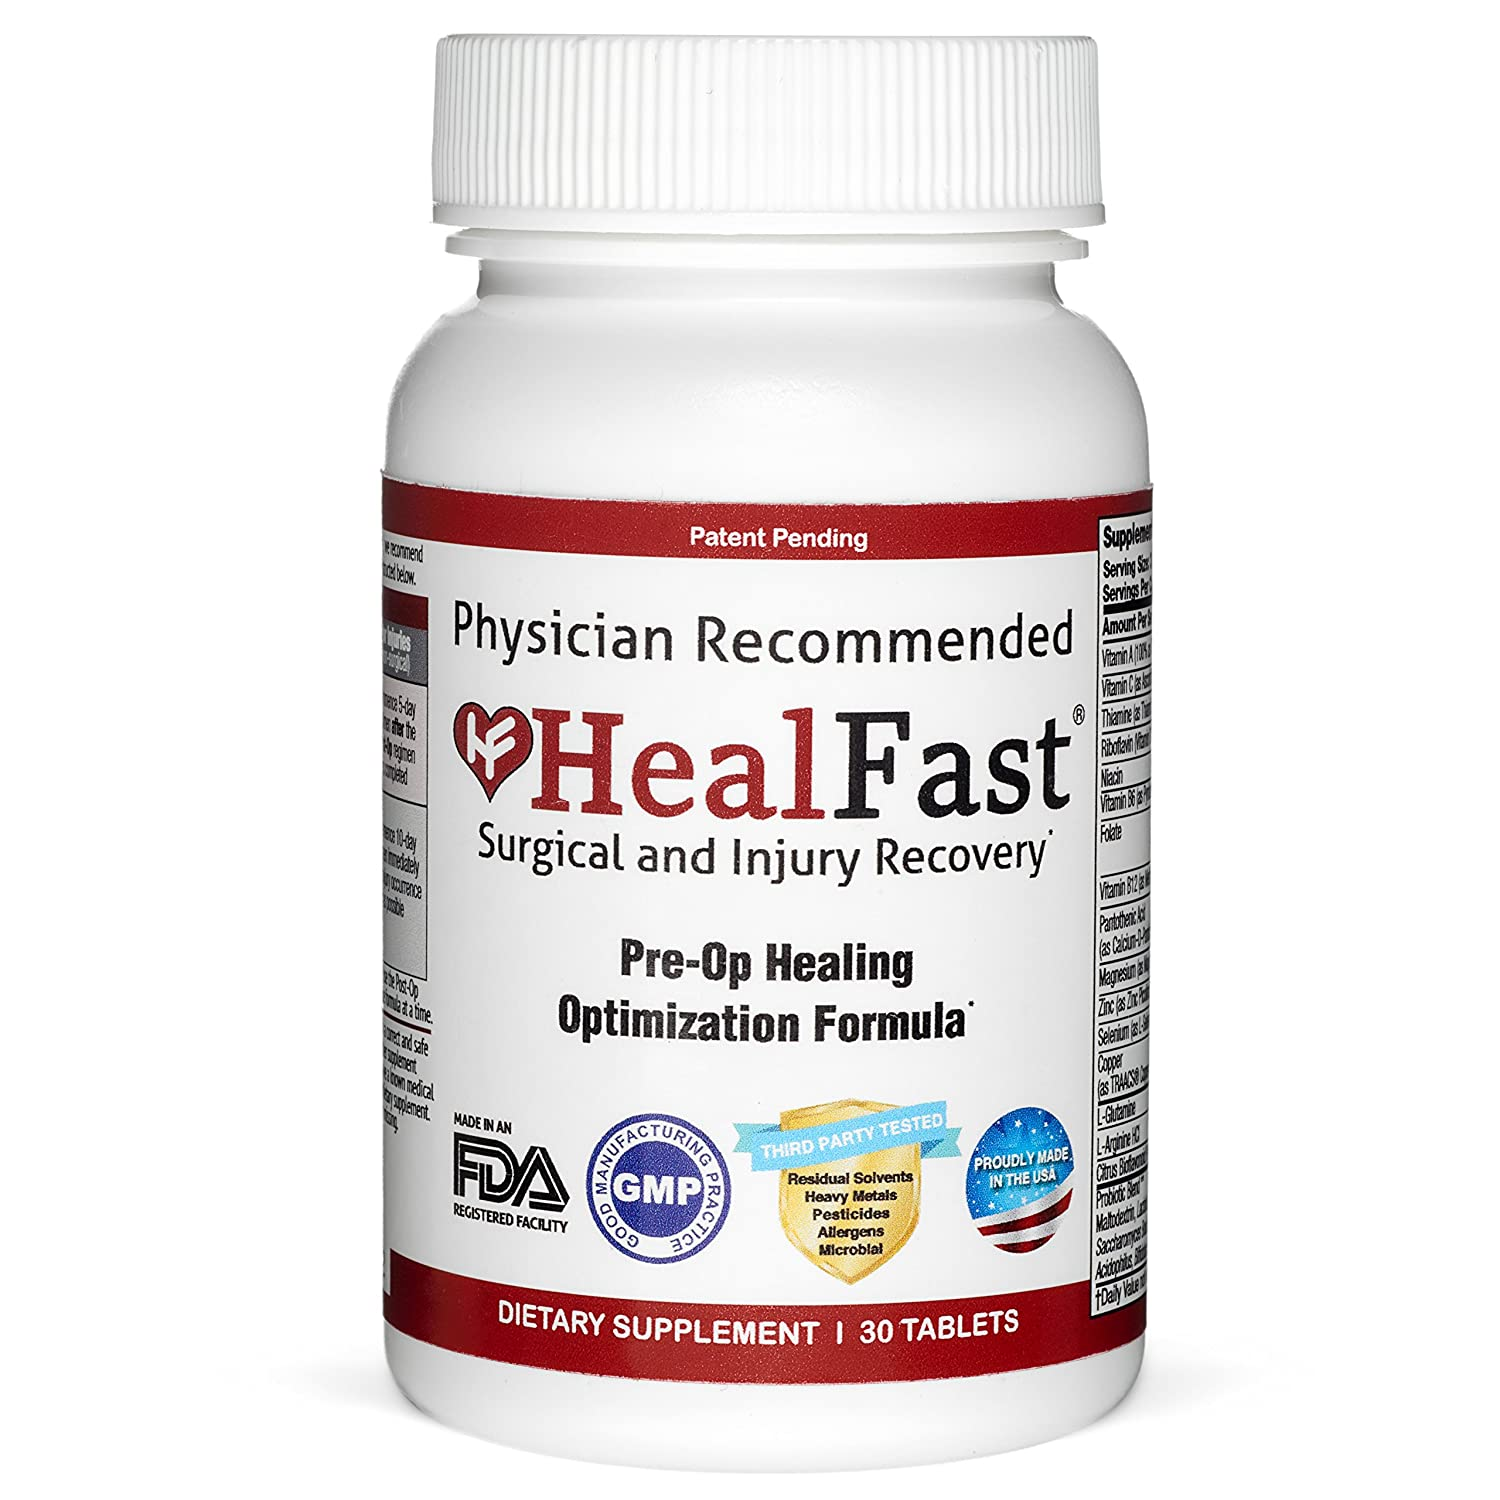 HealFast Surgical Injury Recovery Pre-Op Healing Optimization Formula 30 Tablets